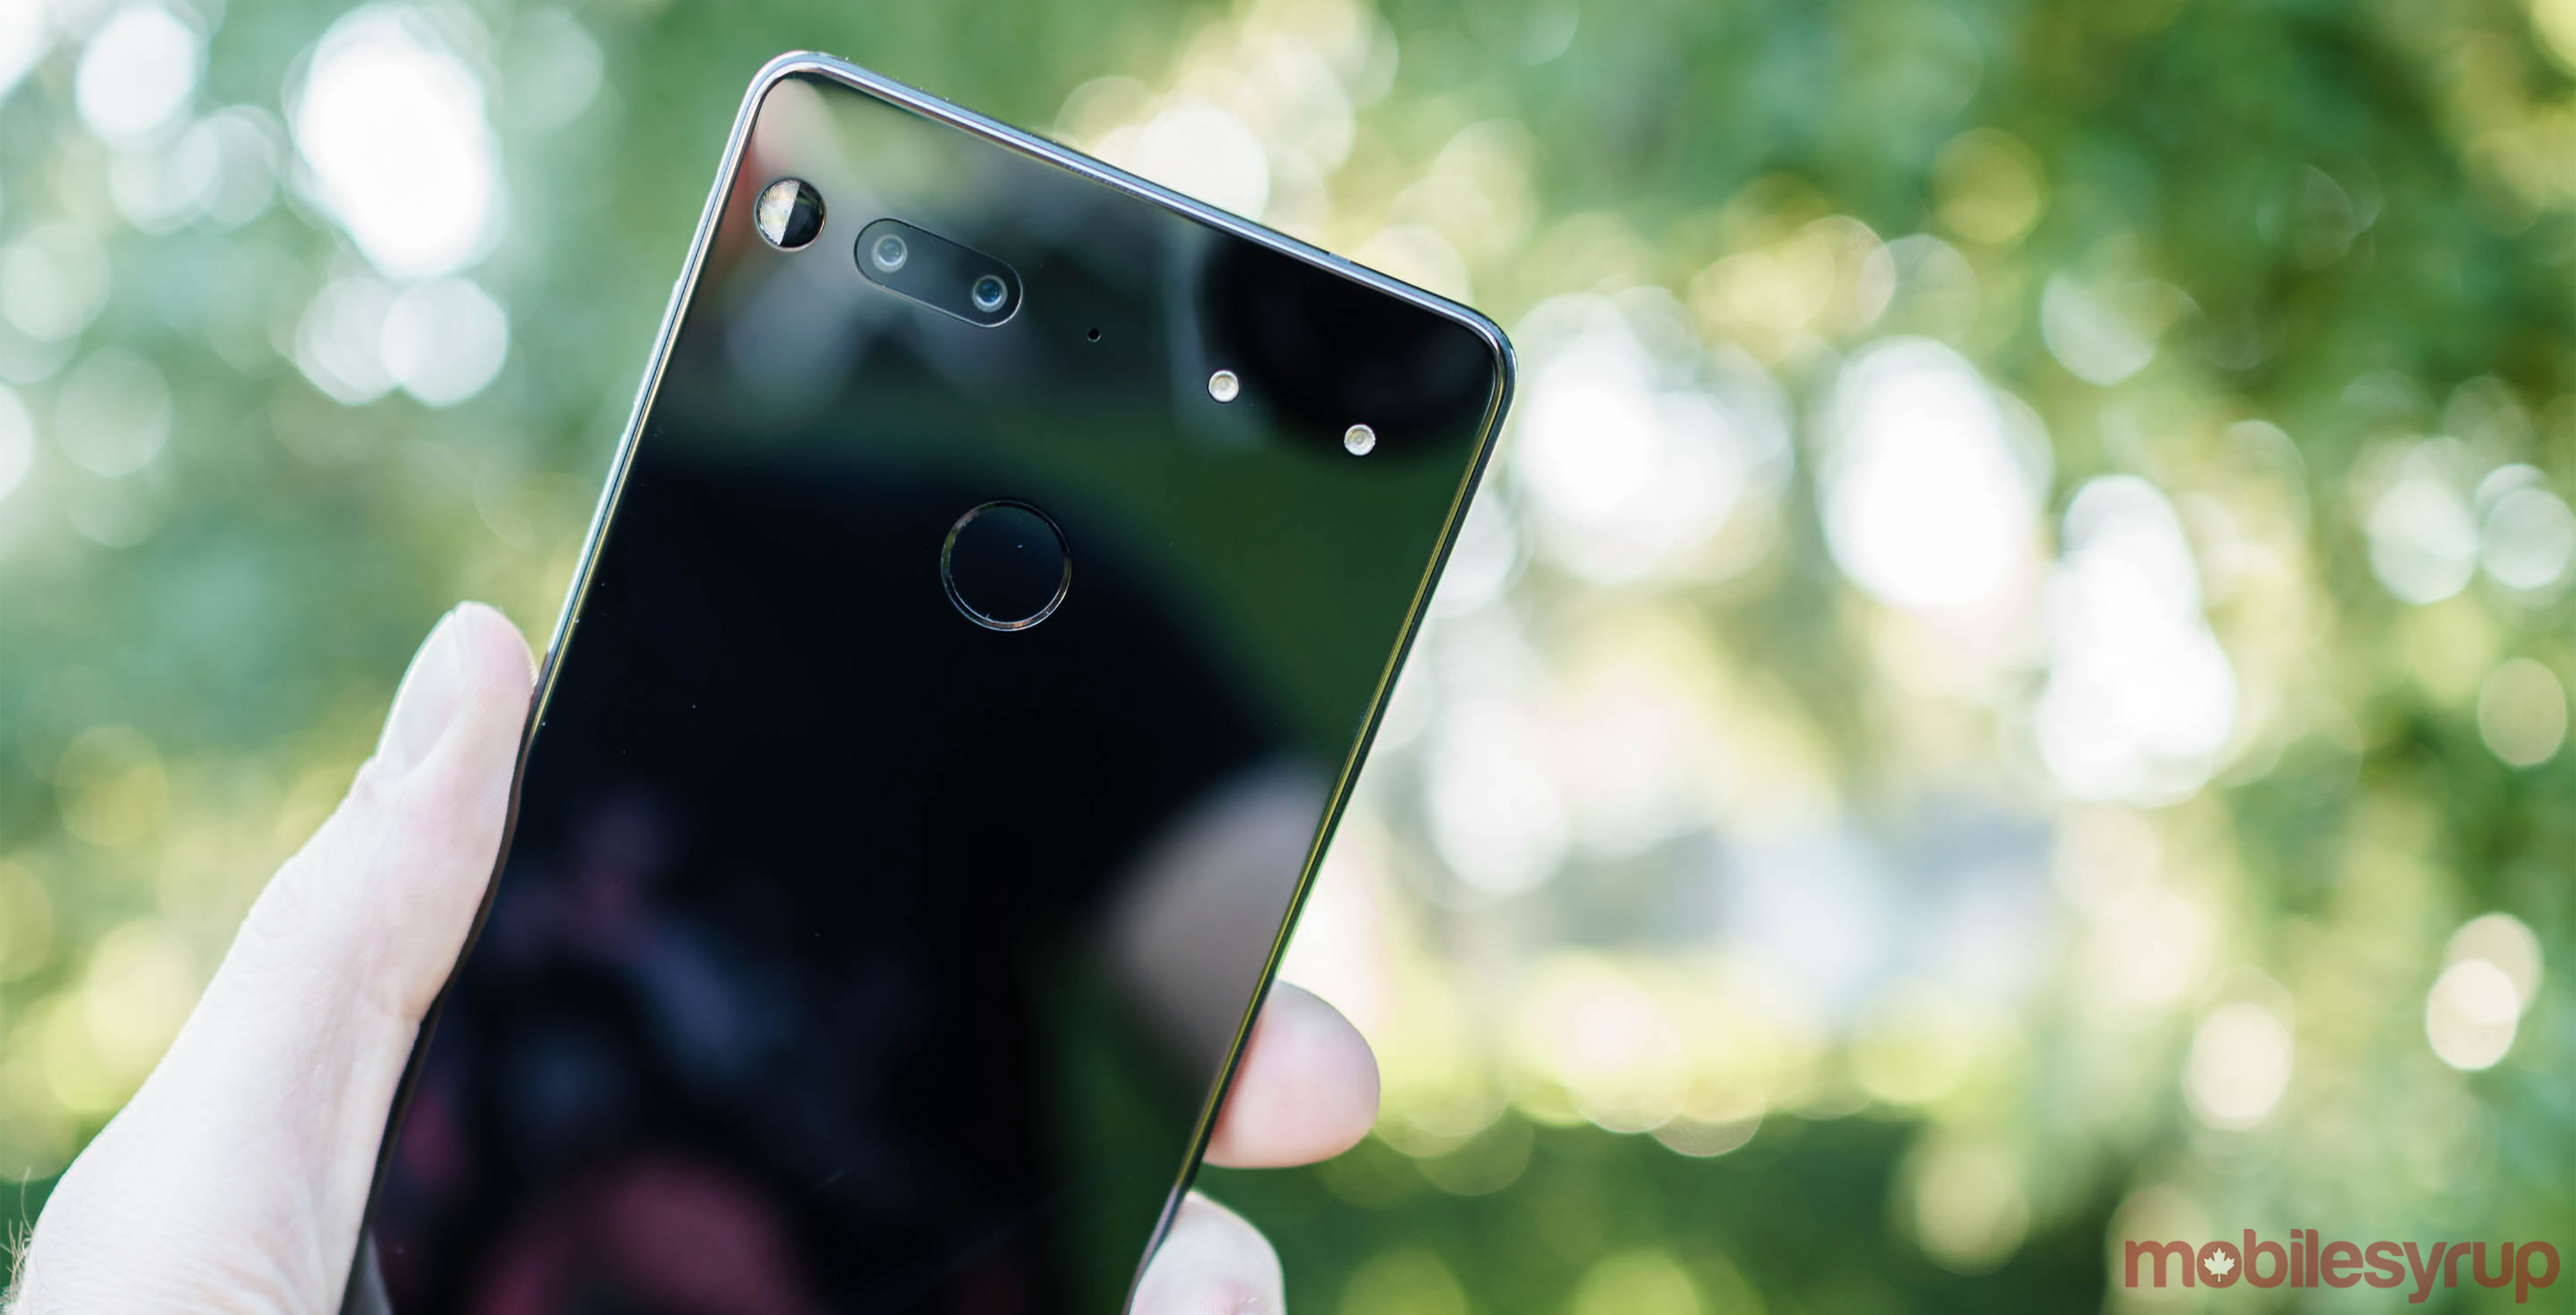 Andy Rubin Responds To Report Of Essential Phone 2's Cancellation